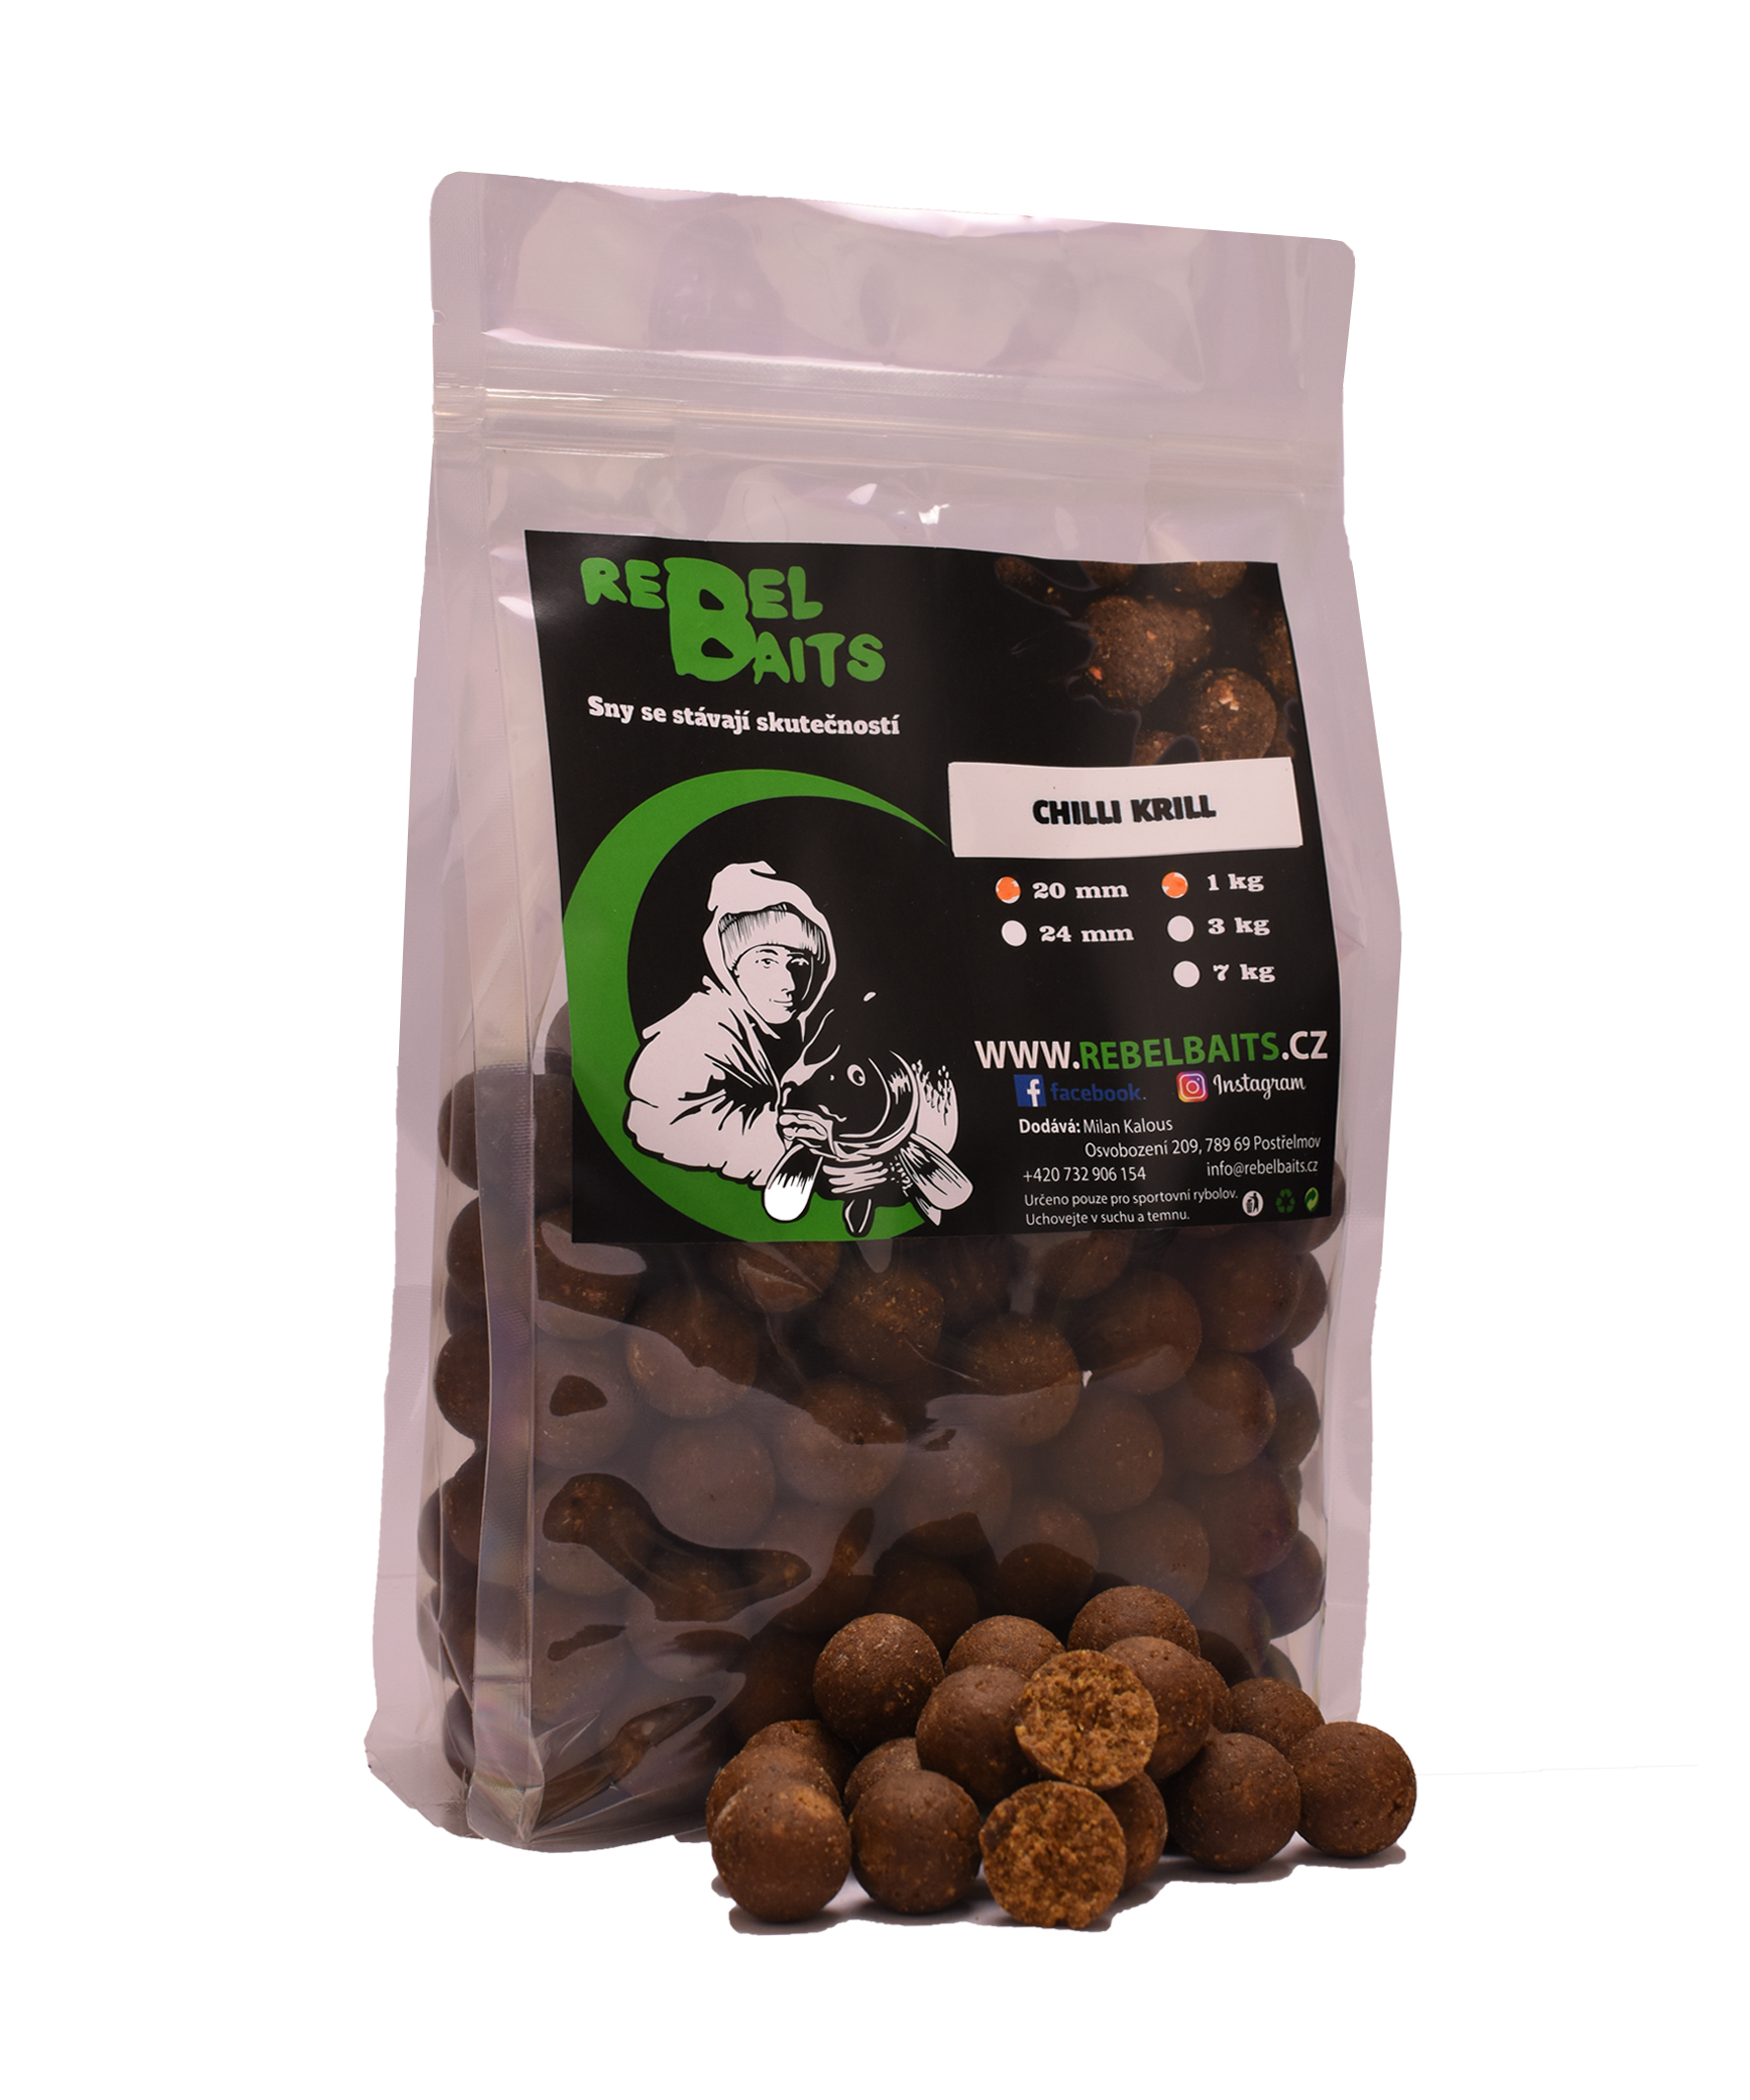 Boilies - Chilli Krill 1kg, 20mm